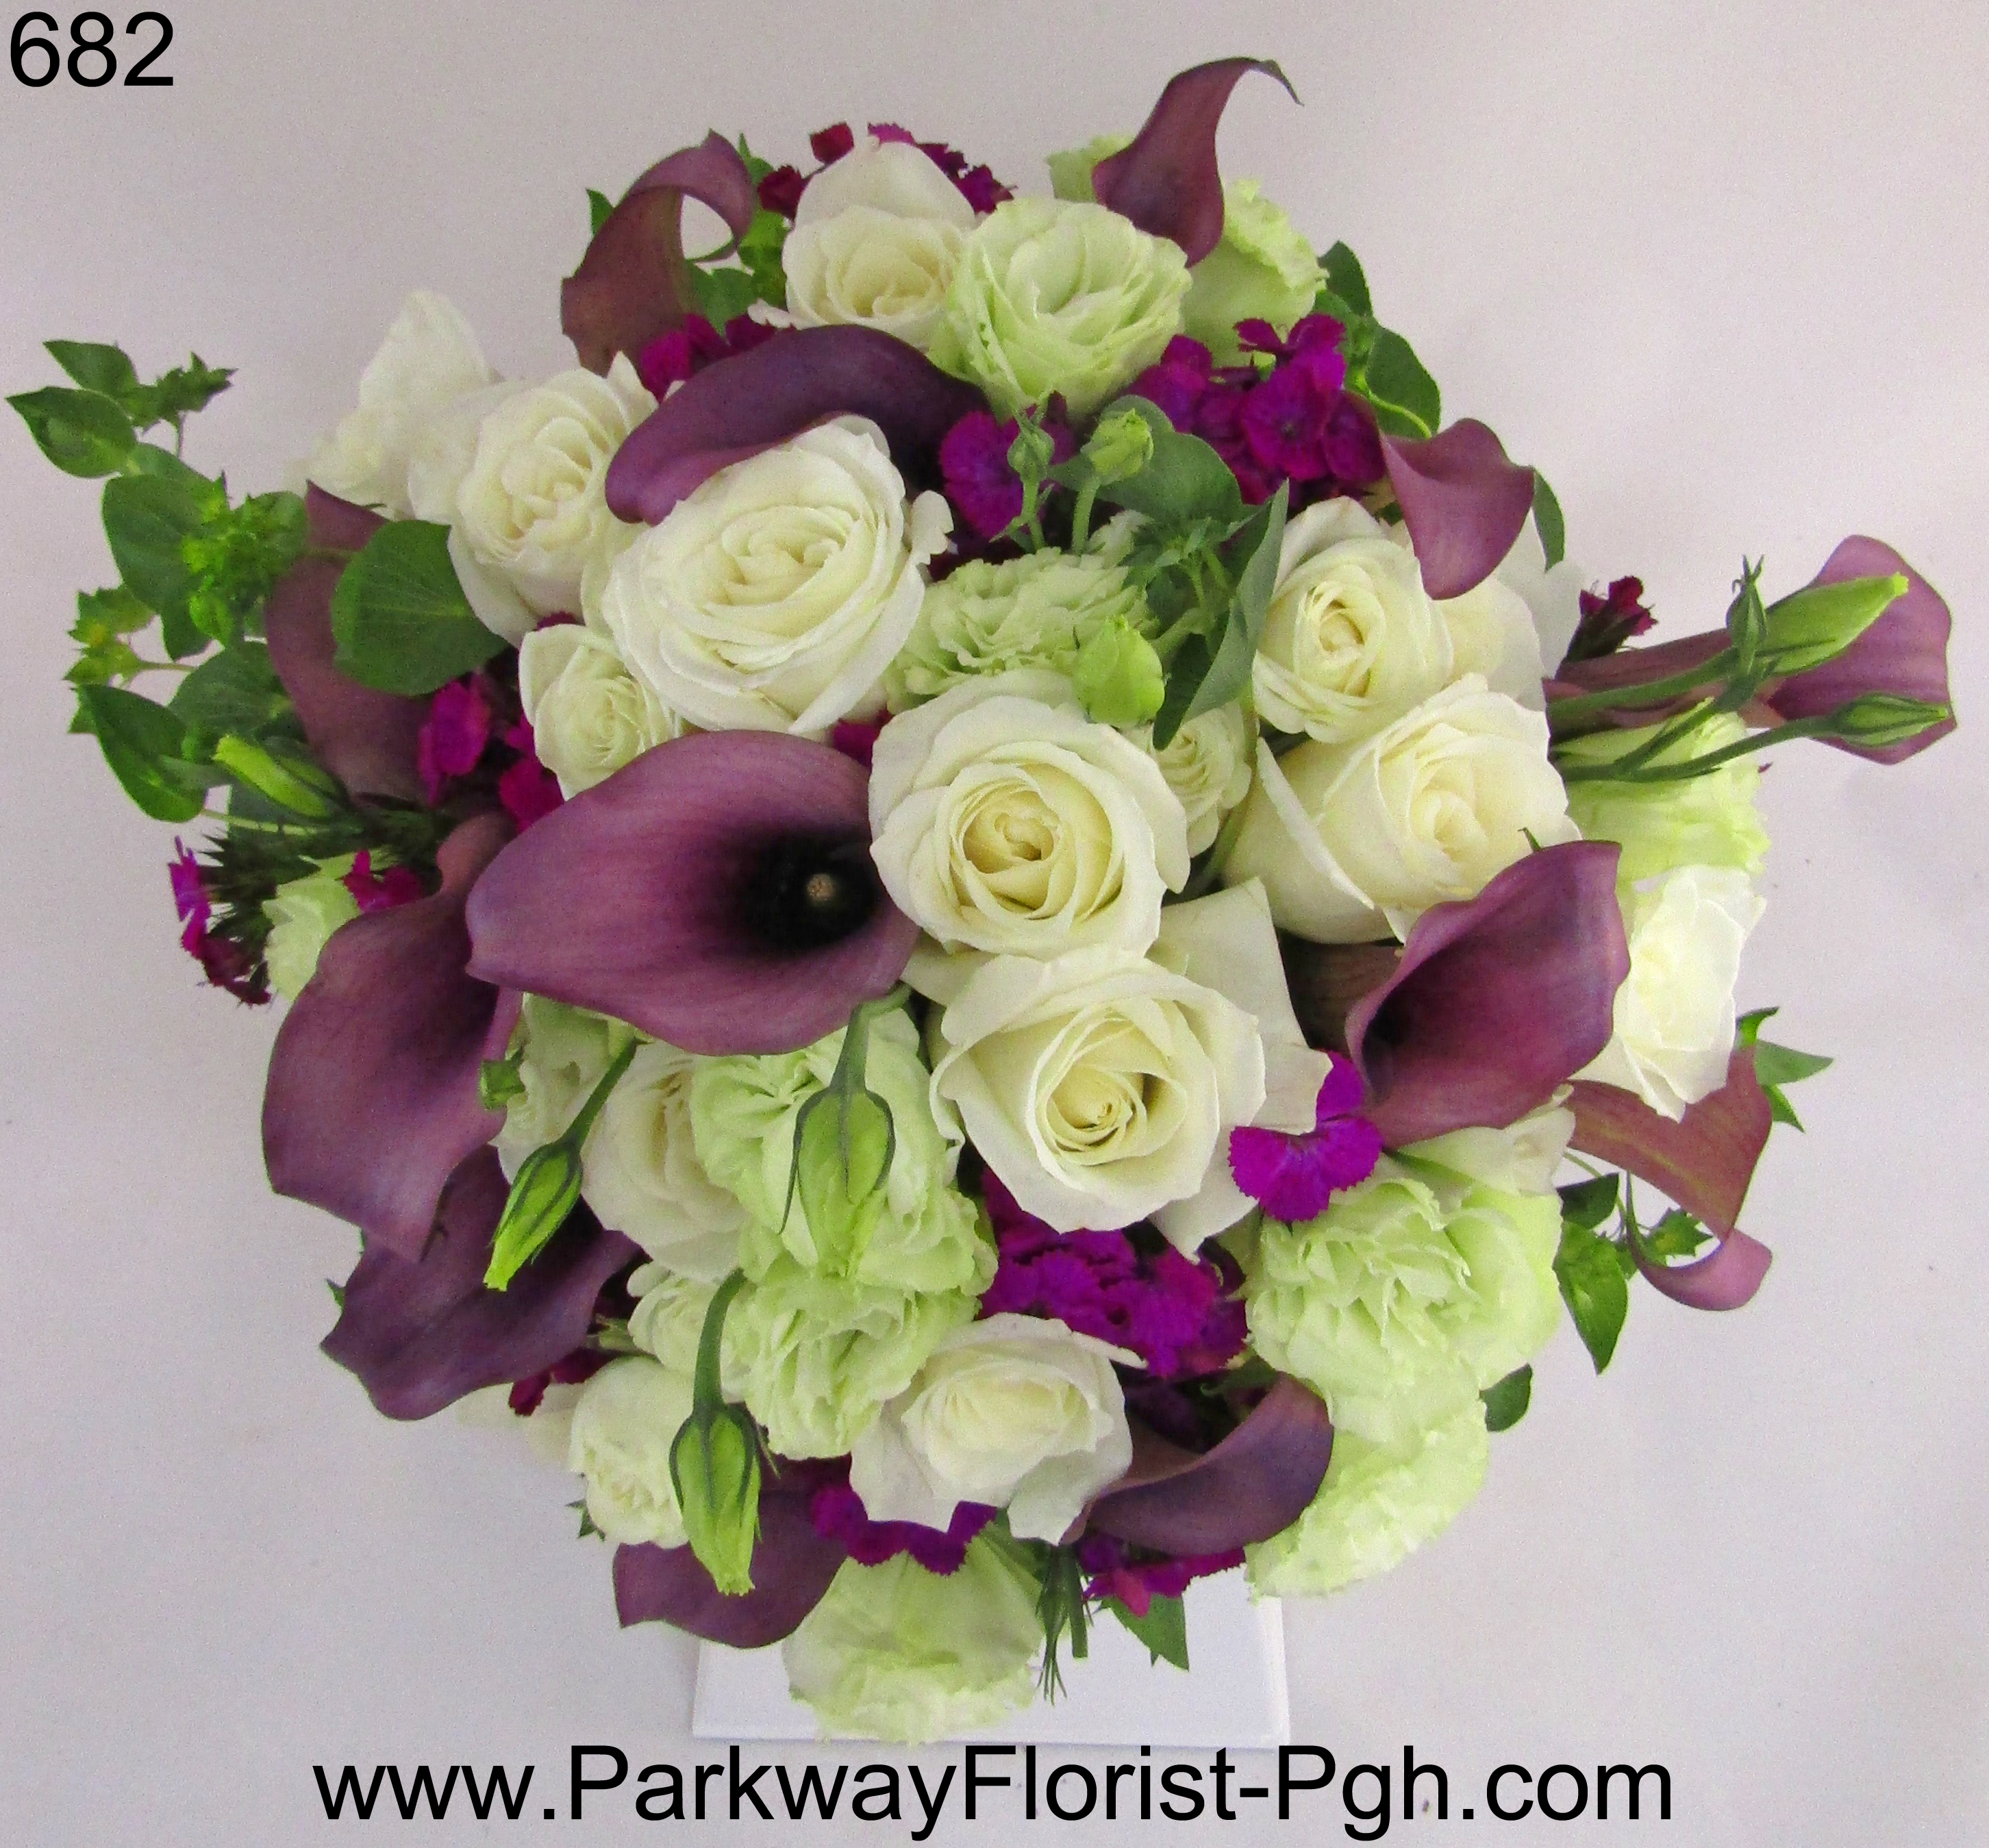 bridal bouquet | Parkway Florist Pittsburgh Blog